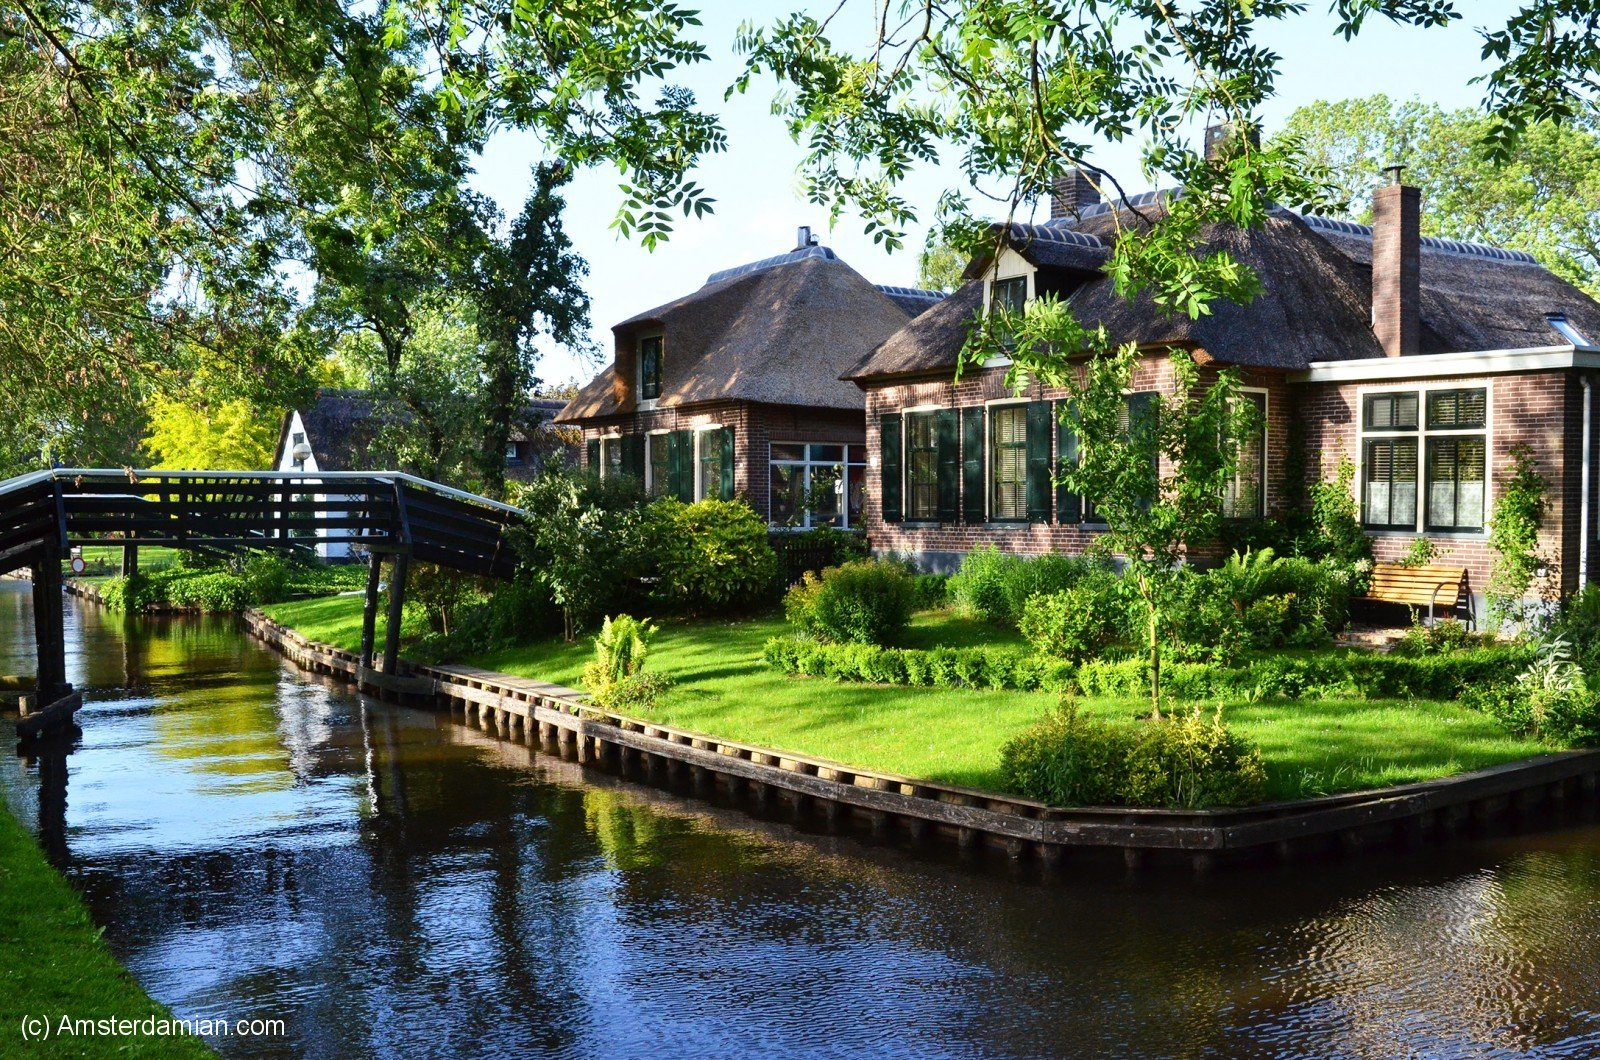 A Magical Place Giethoorn The Village With No Roads